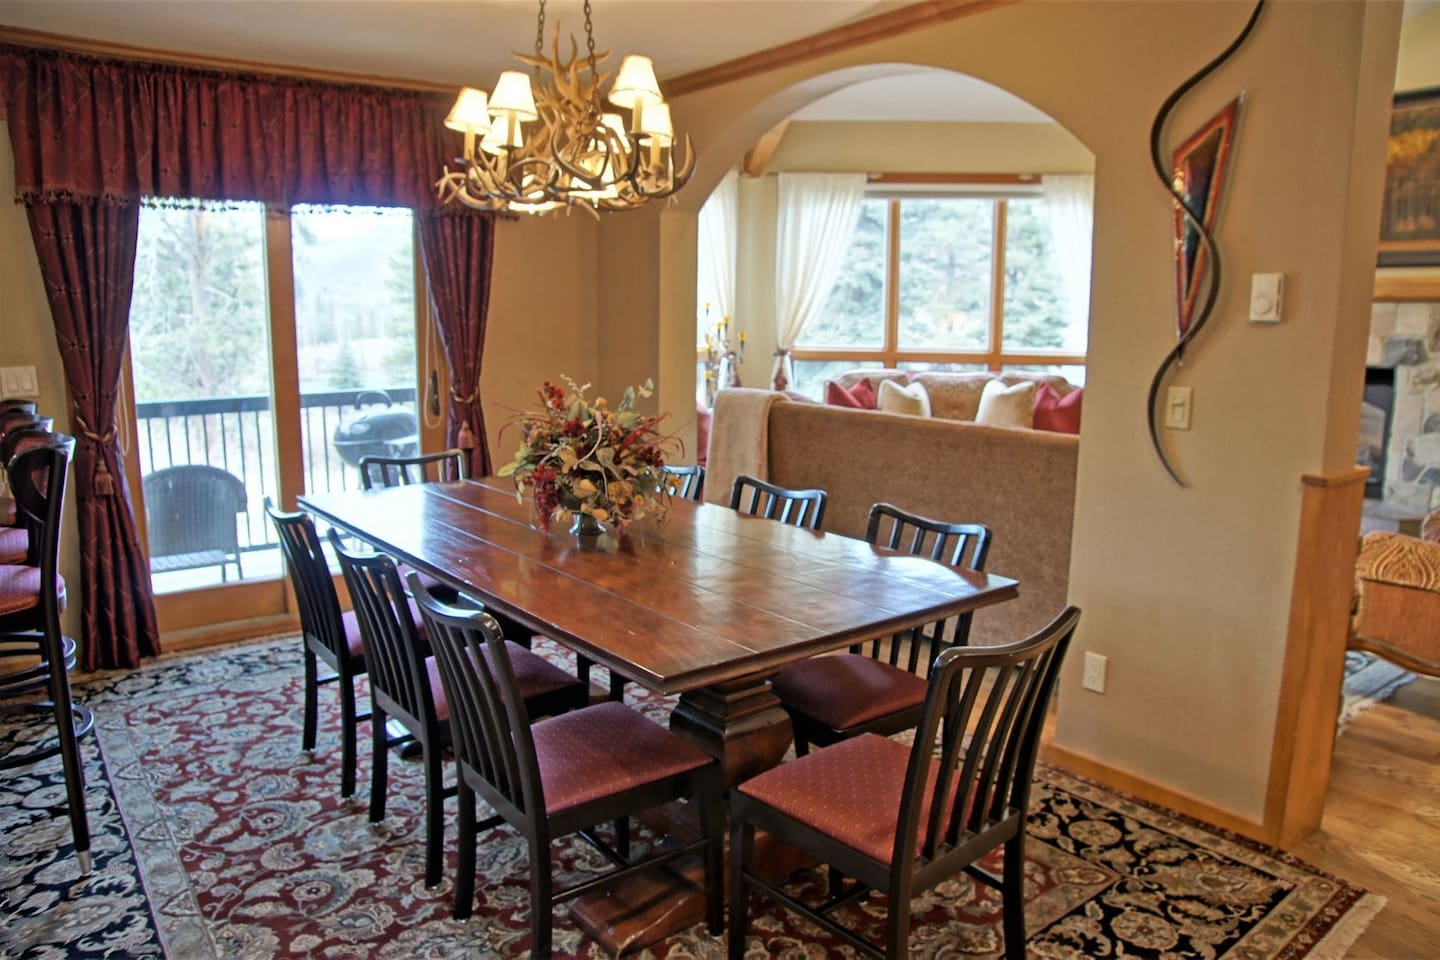 Dining table for 8 with extra seating at the breakfast counter